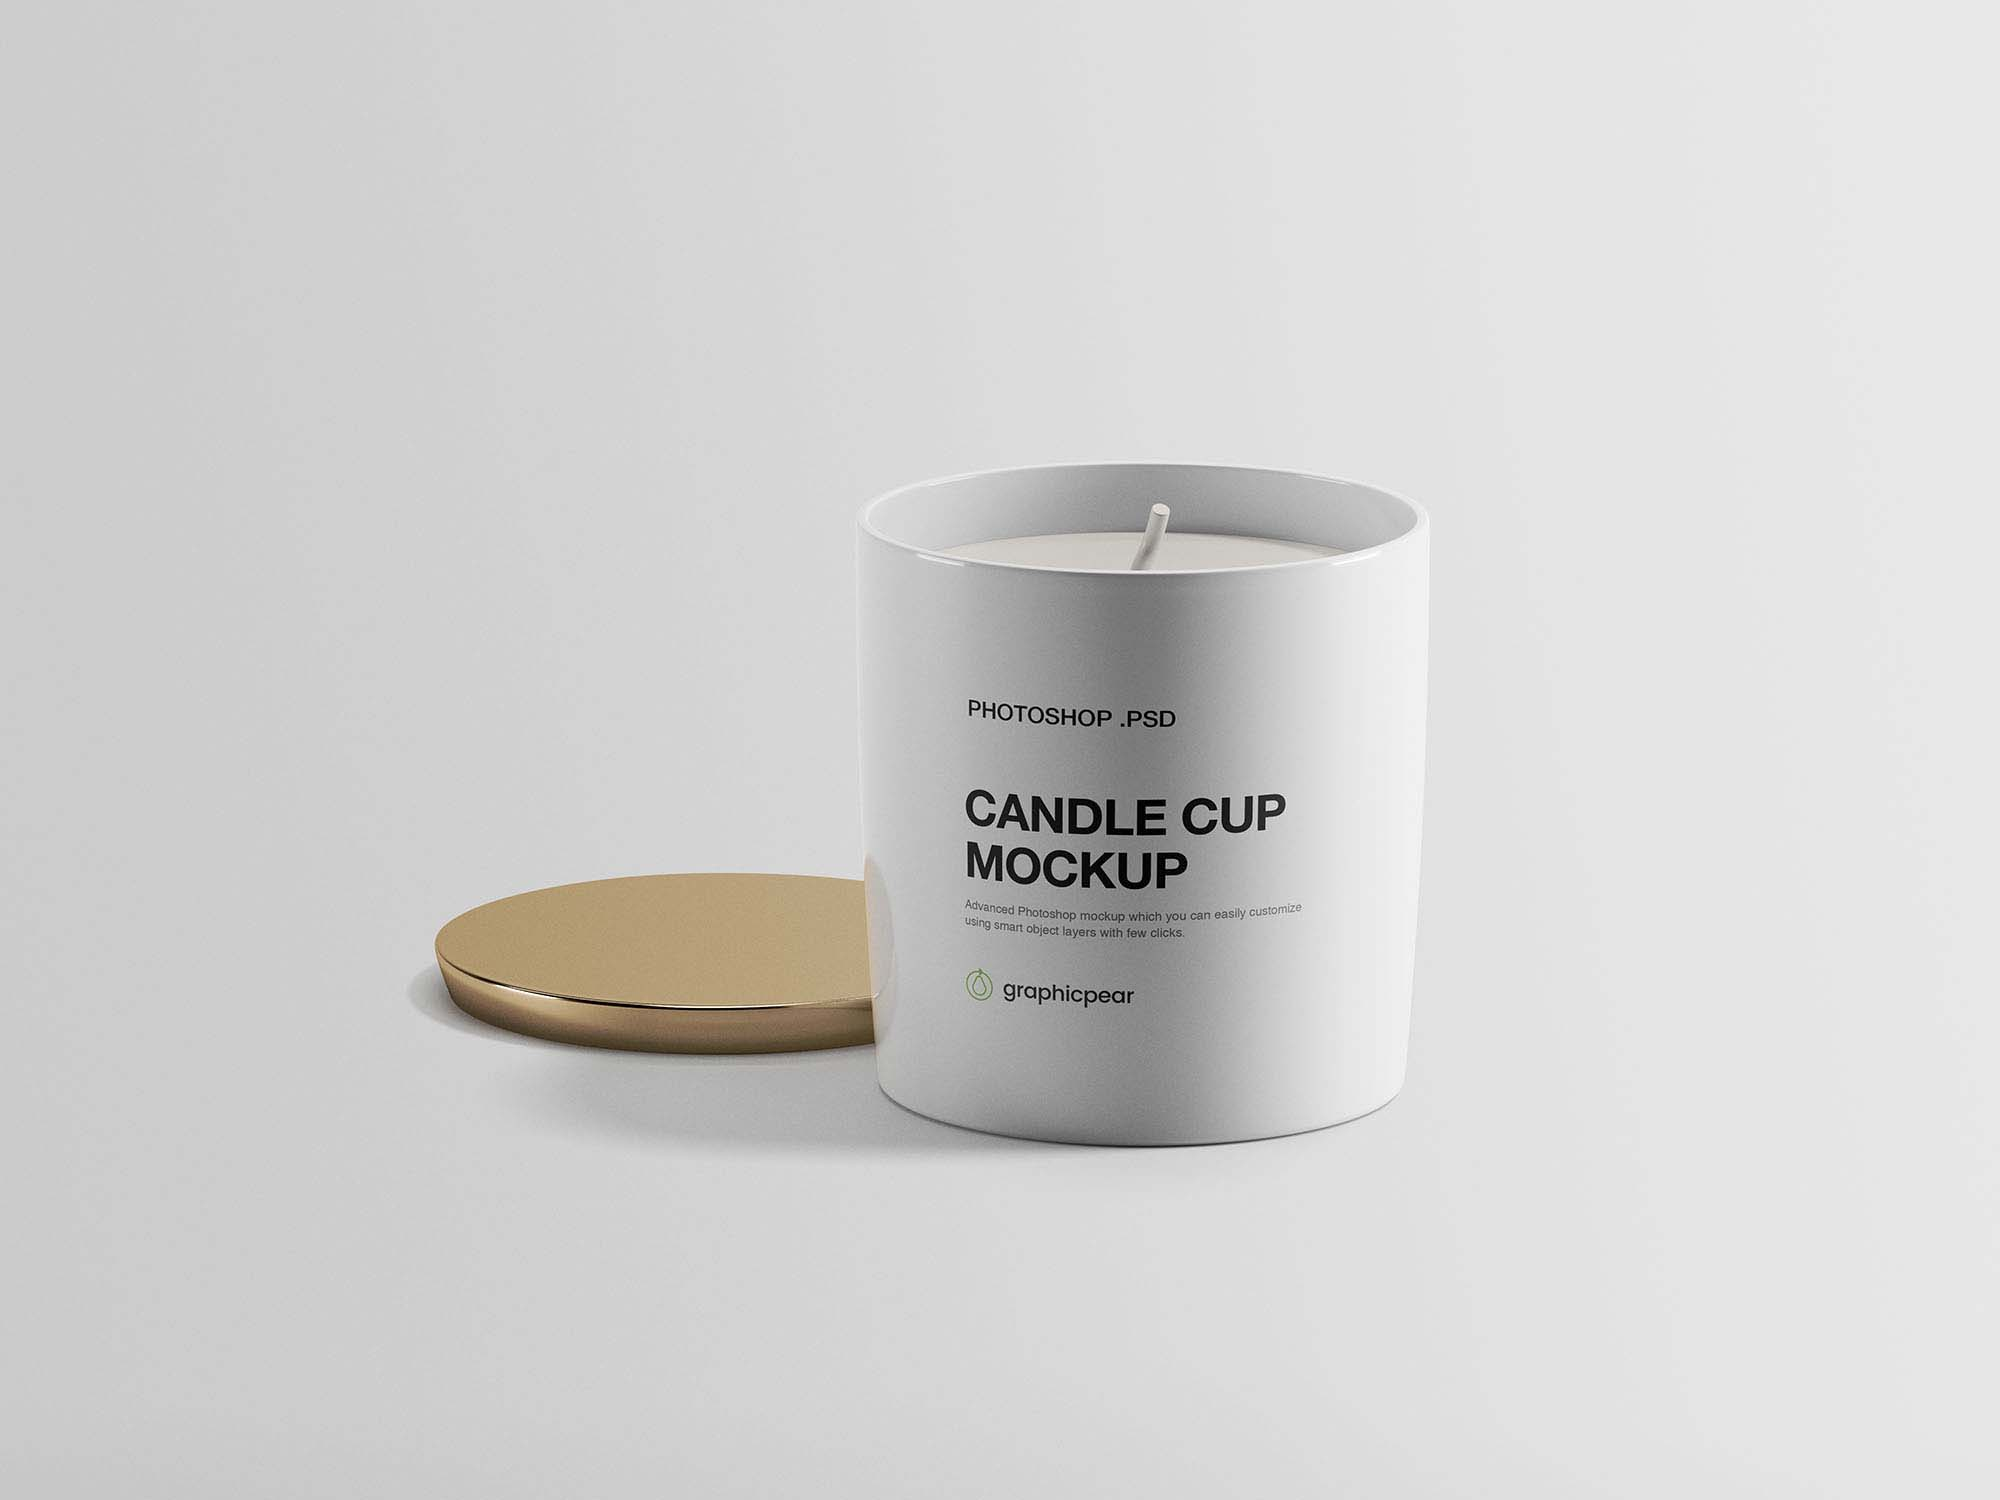 Free Candle Cup Mockup Psd Candle Mockup Free Candles Candle Cup